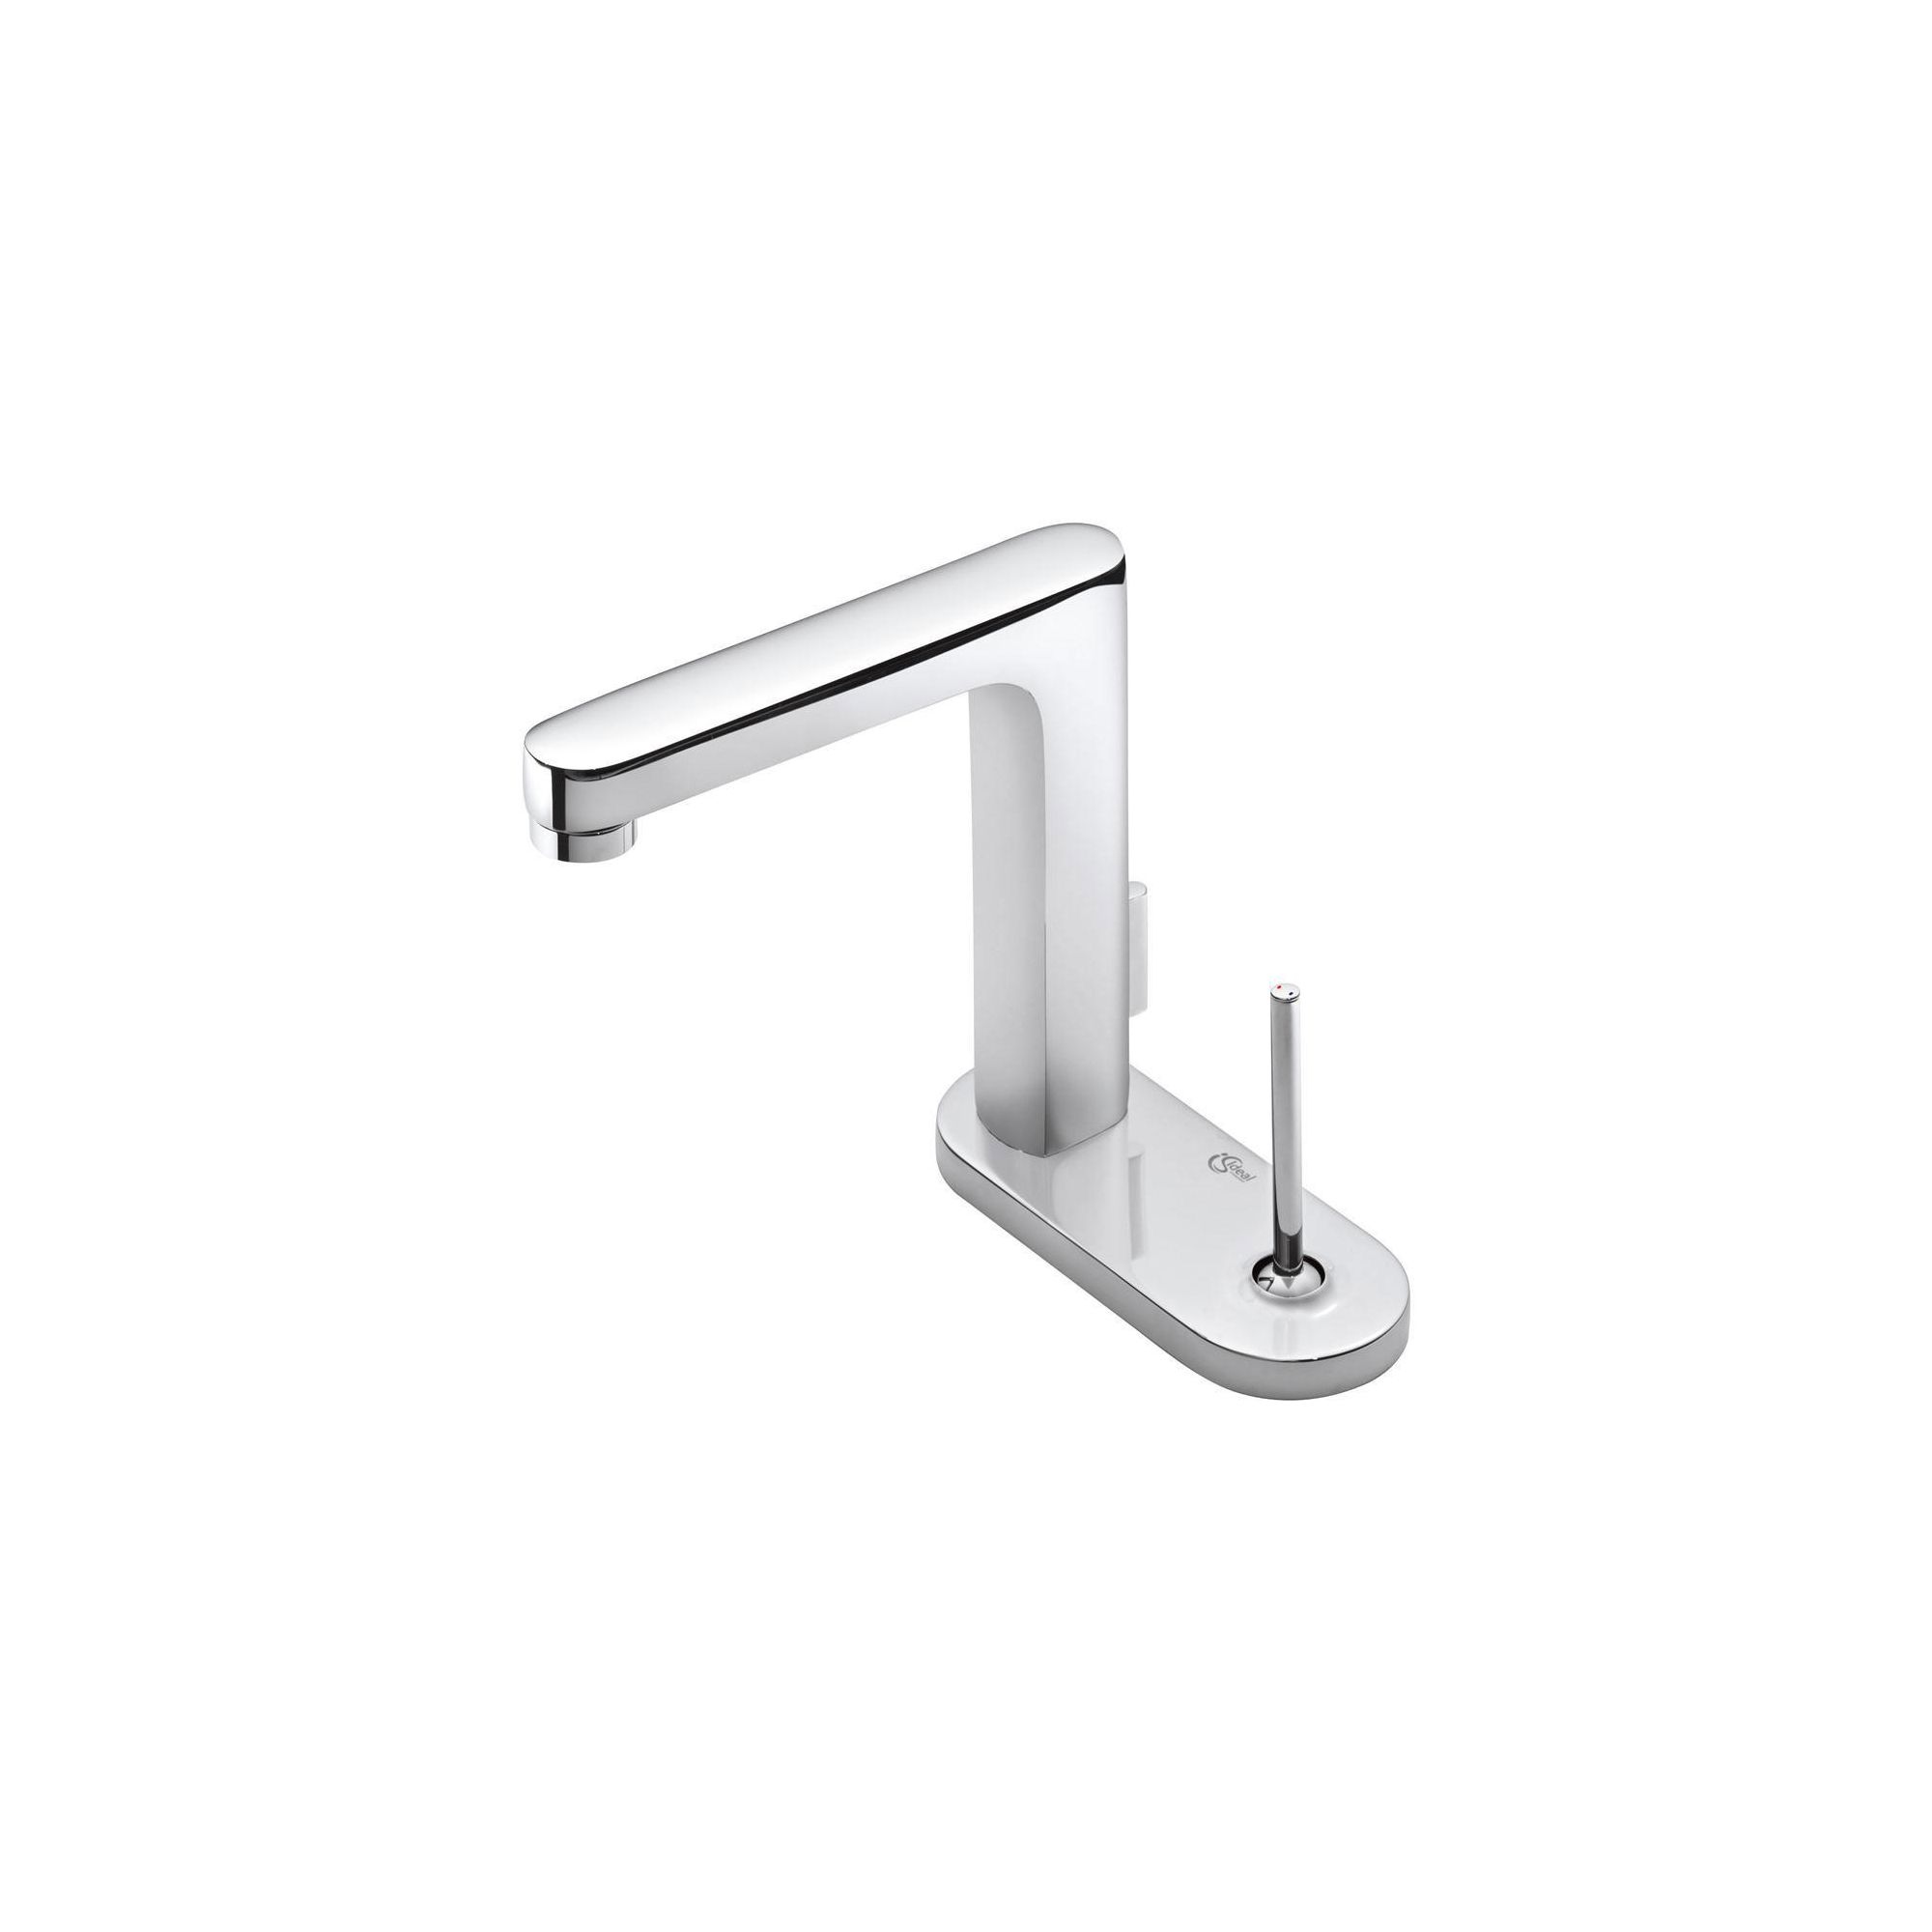 Ideal Standard Simply U 2 Tap Hole Rectangular Spout Basin Mixer Tap with 1 Oval Backplate at Tesco Direct